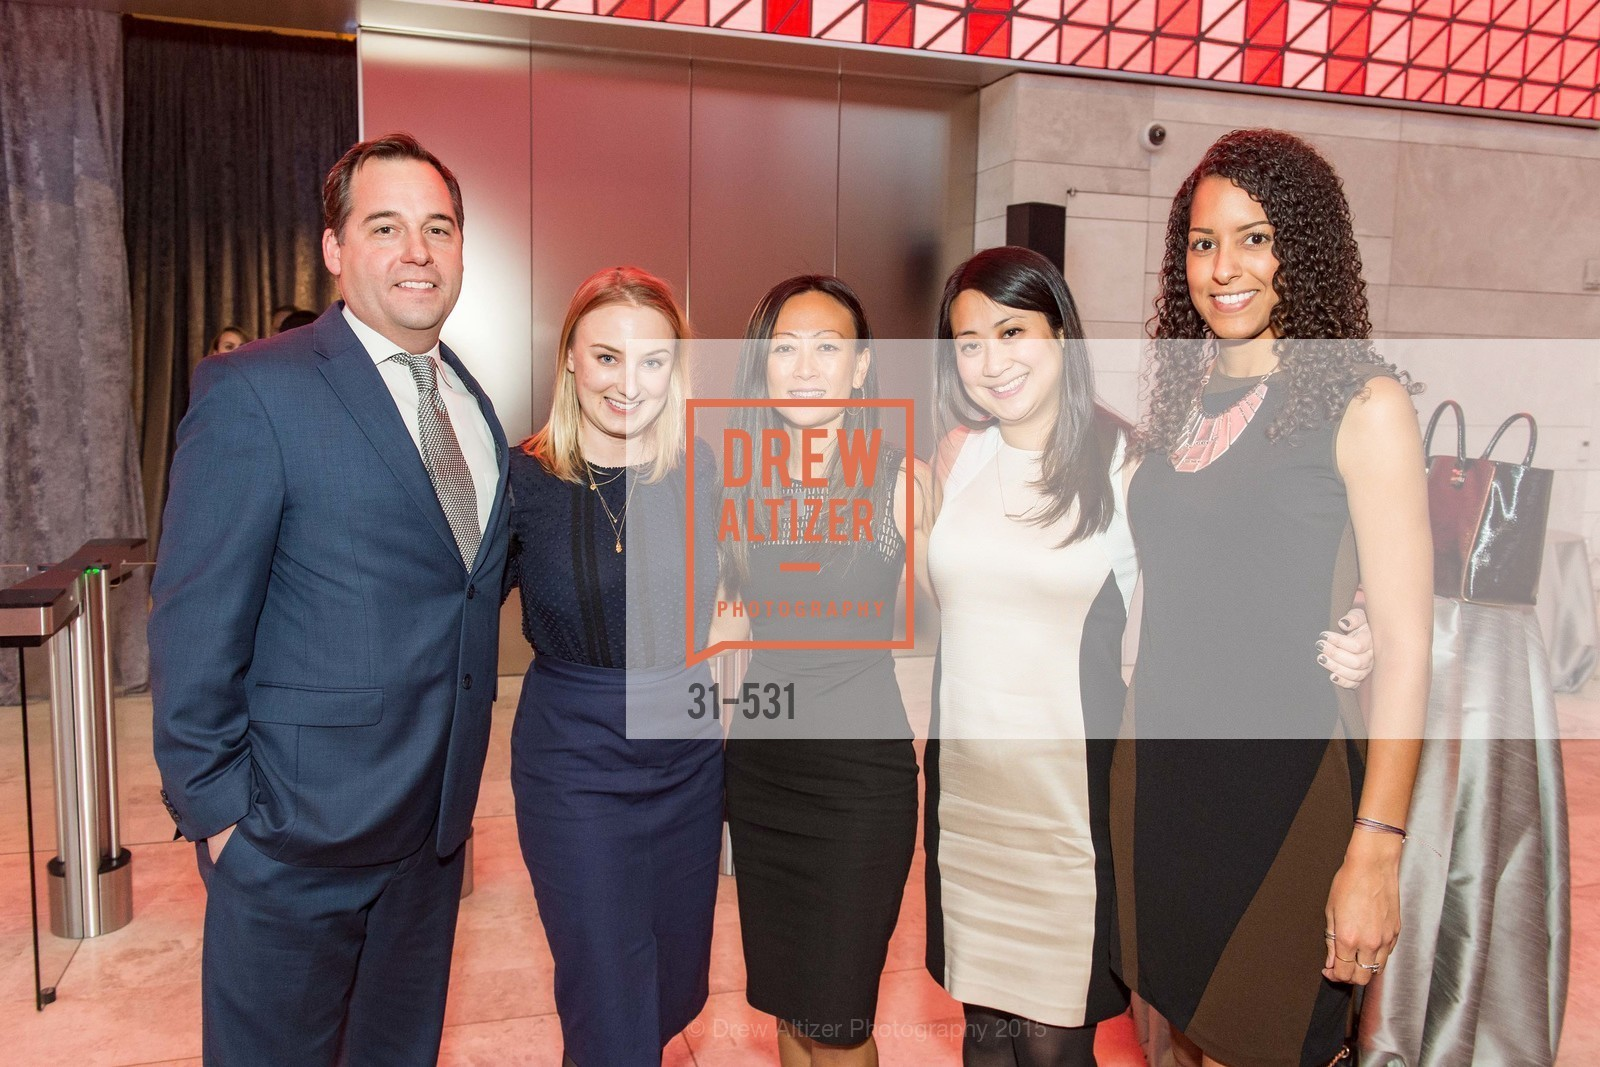 Justin Sacco, Elisa Price, Eileen Kong, Grace Hwang, Alexandra Stoelzle, Kilroy Unveiling Presents Virtual Depictions: San Francisco by Refik Anadol, 350 Mission Street. 350 Mission Street, November 16th, 2015,Drew Altizer, Drew Altizer Photography, full-service agency, private events, San Francisco photographer, photographer california